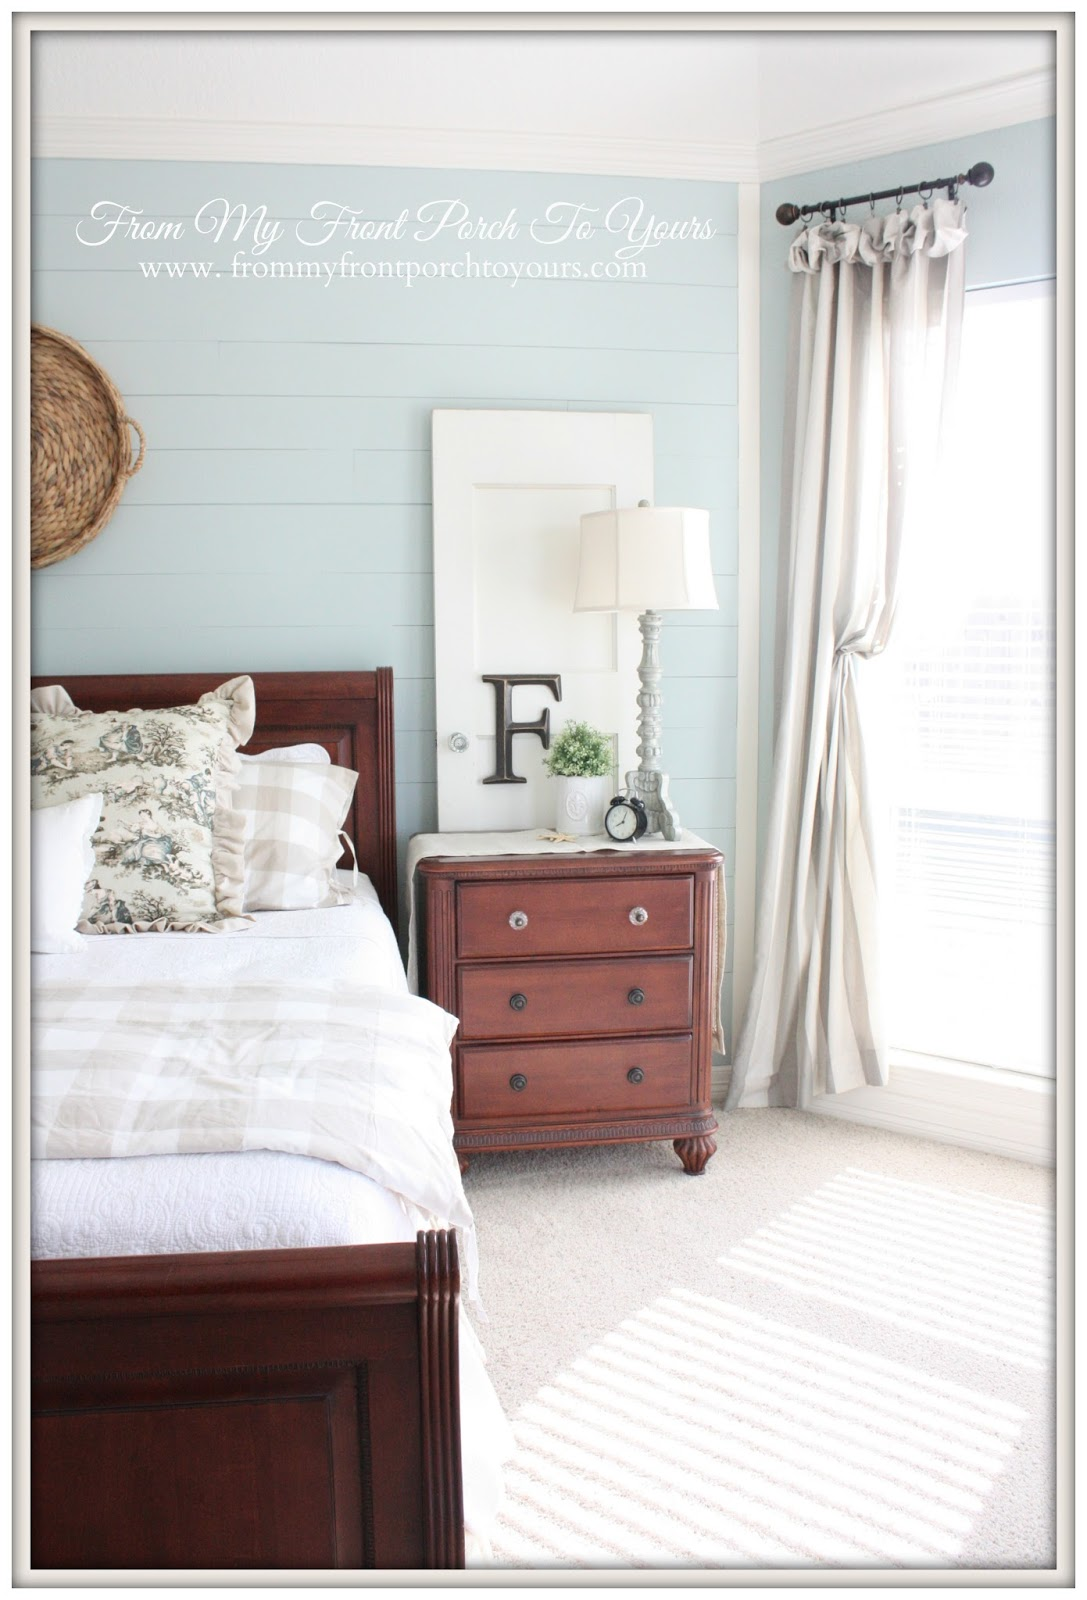 French Farmhouse Master Bedroom-Top Blog Posts of 2014- From My Front Porch To Yours